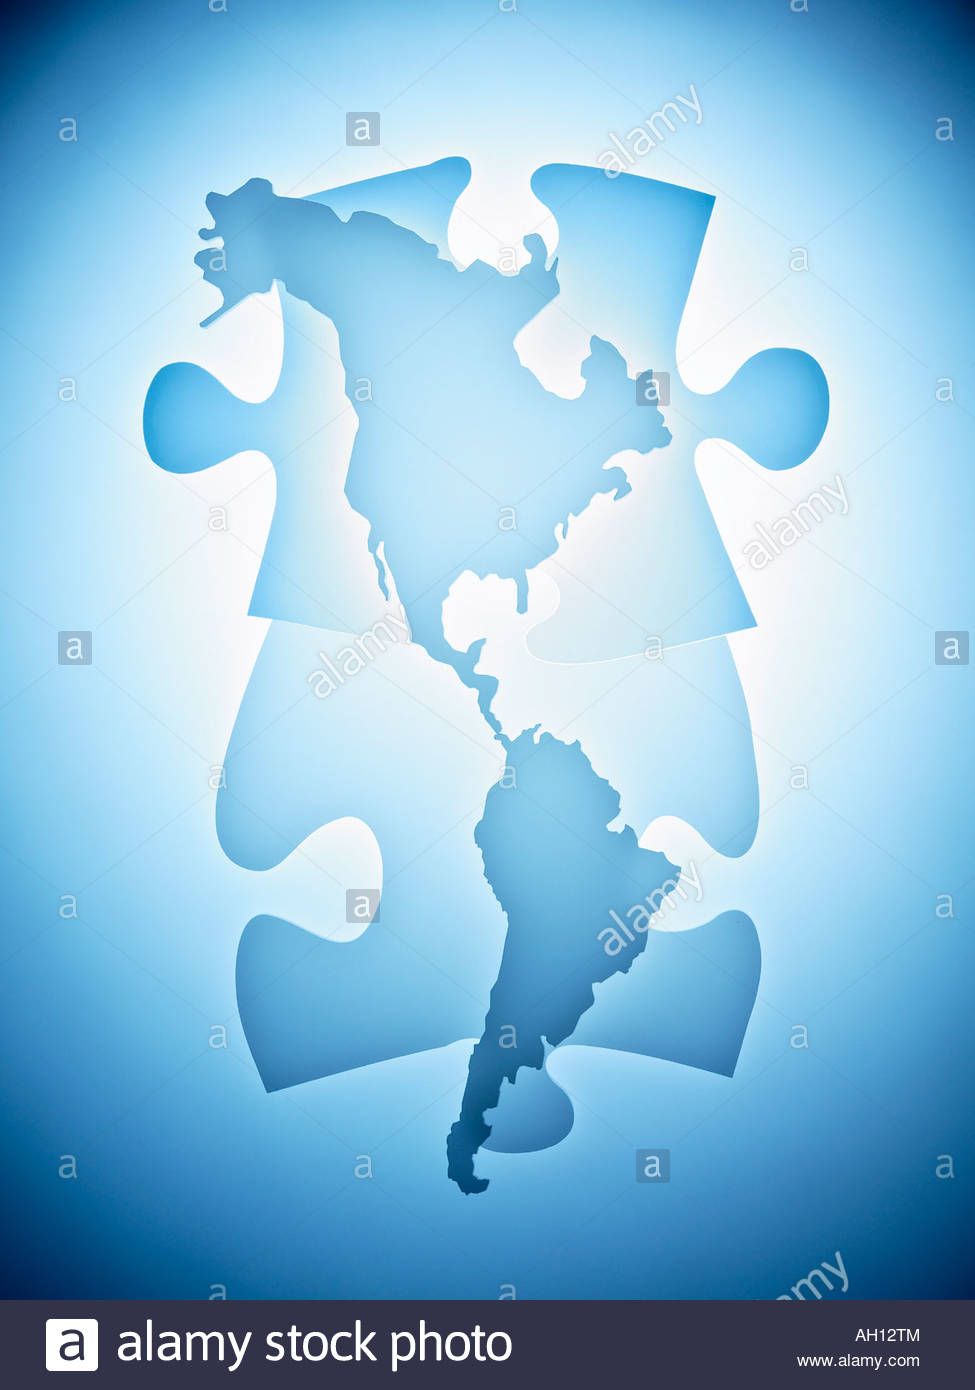 Jigsaw puzzle world map stock photos jigsaw puzzle world map stock symbolic puzzle pieces combined with map of north america stock image gumiabroncs Image collections